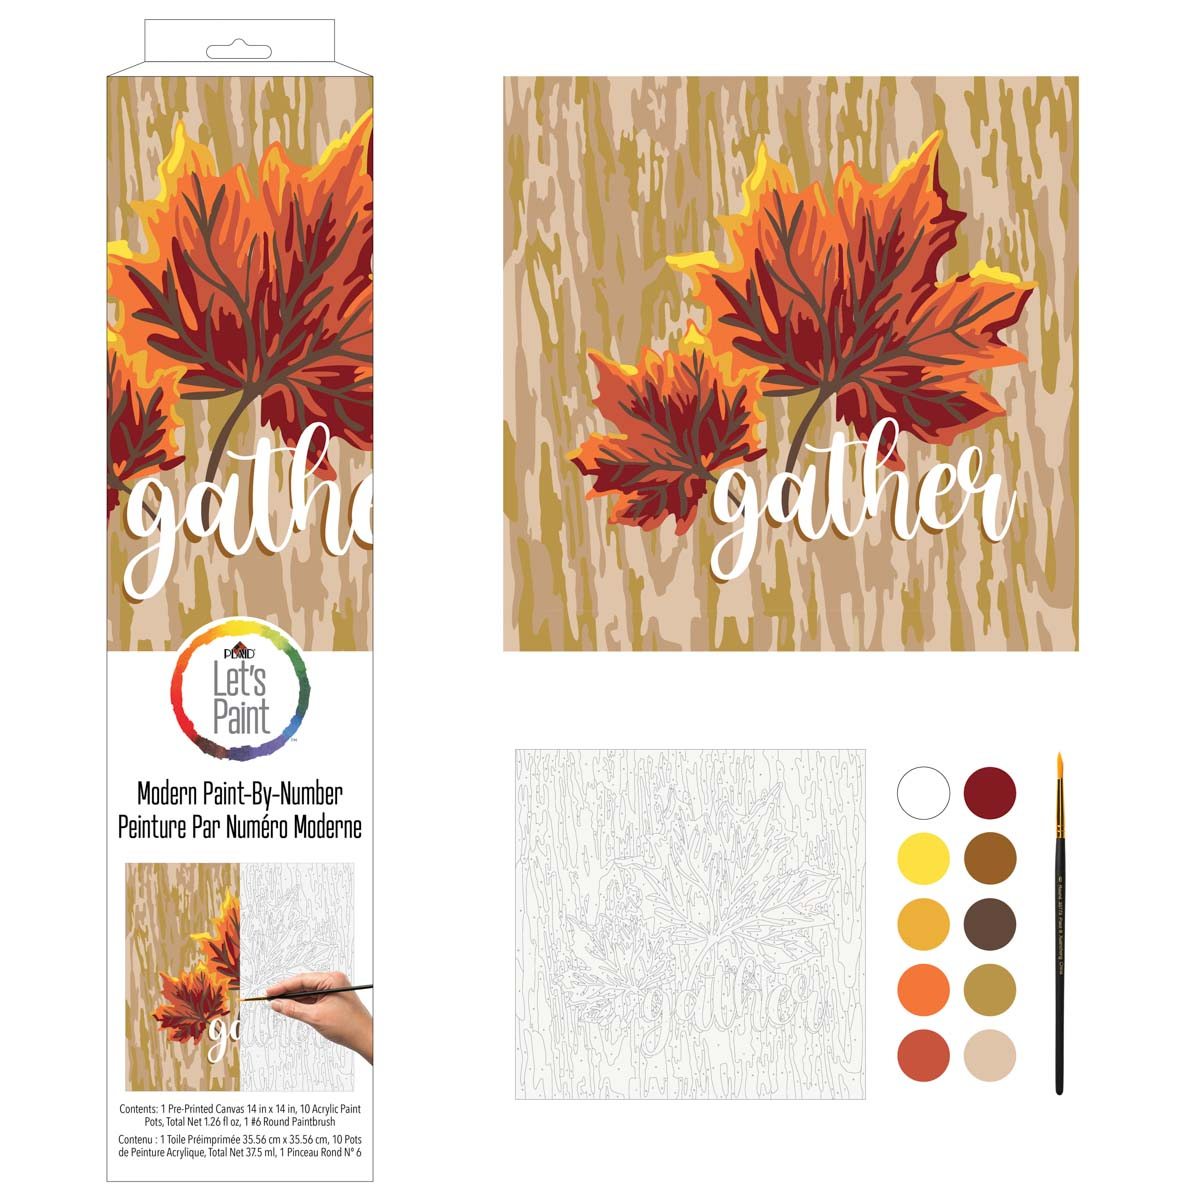 Plaid ® Let's Paint™ Modern Paint-by-Number - Gather Leaf - 17915